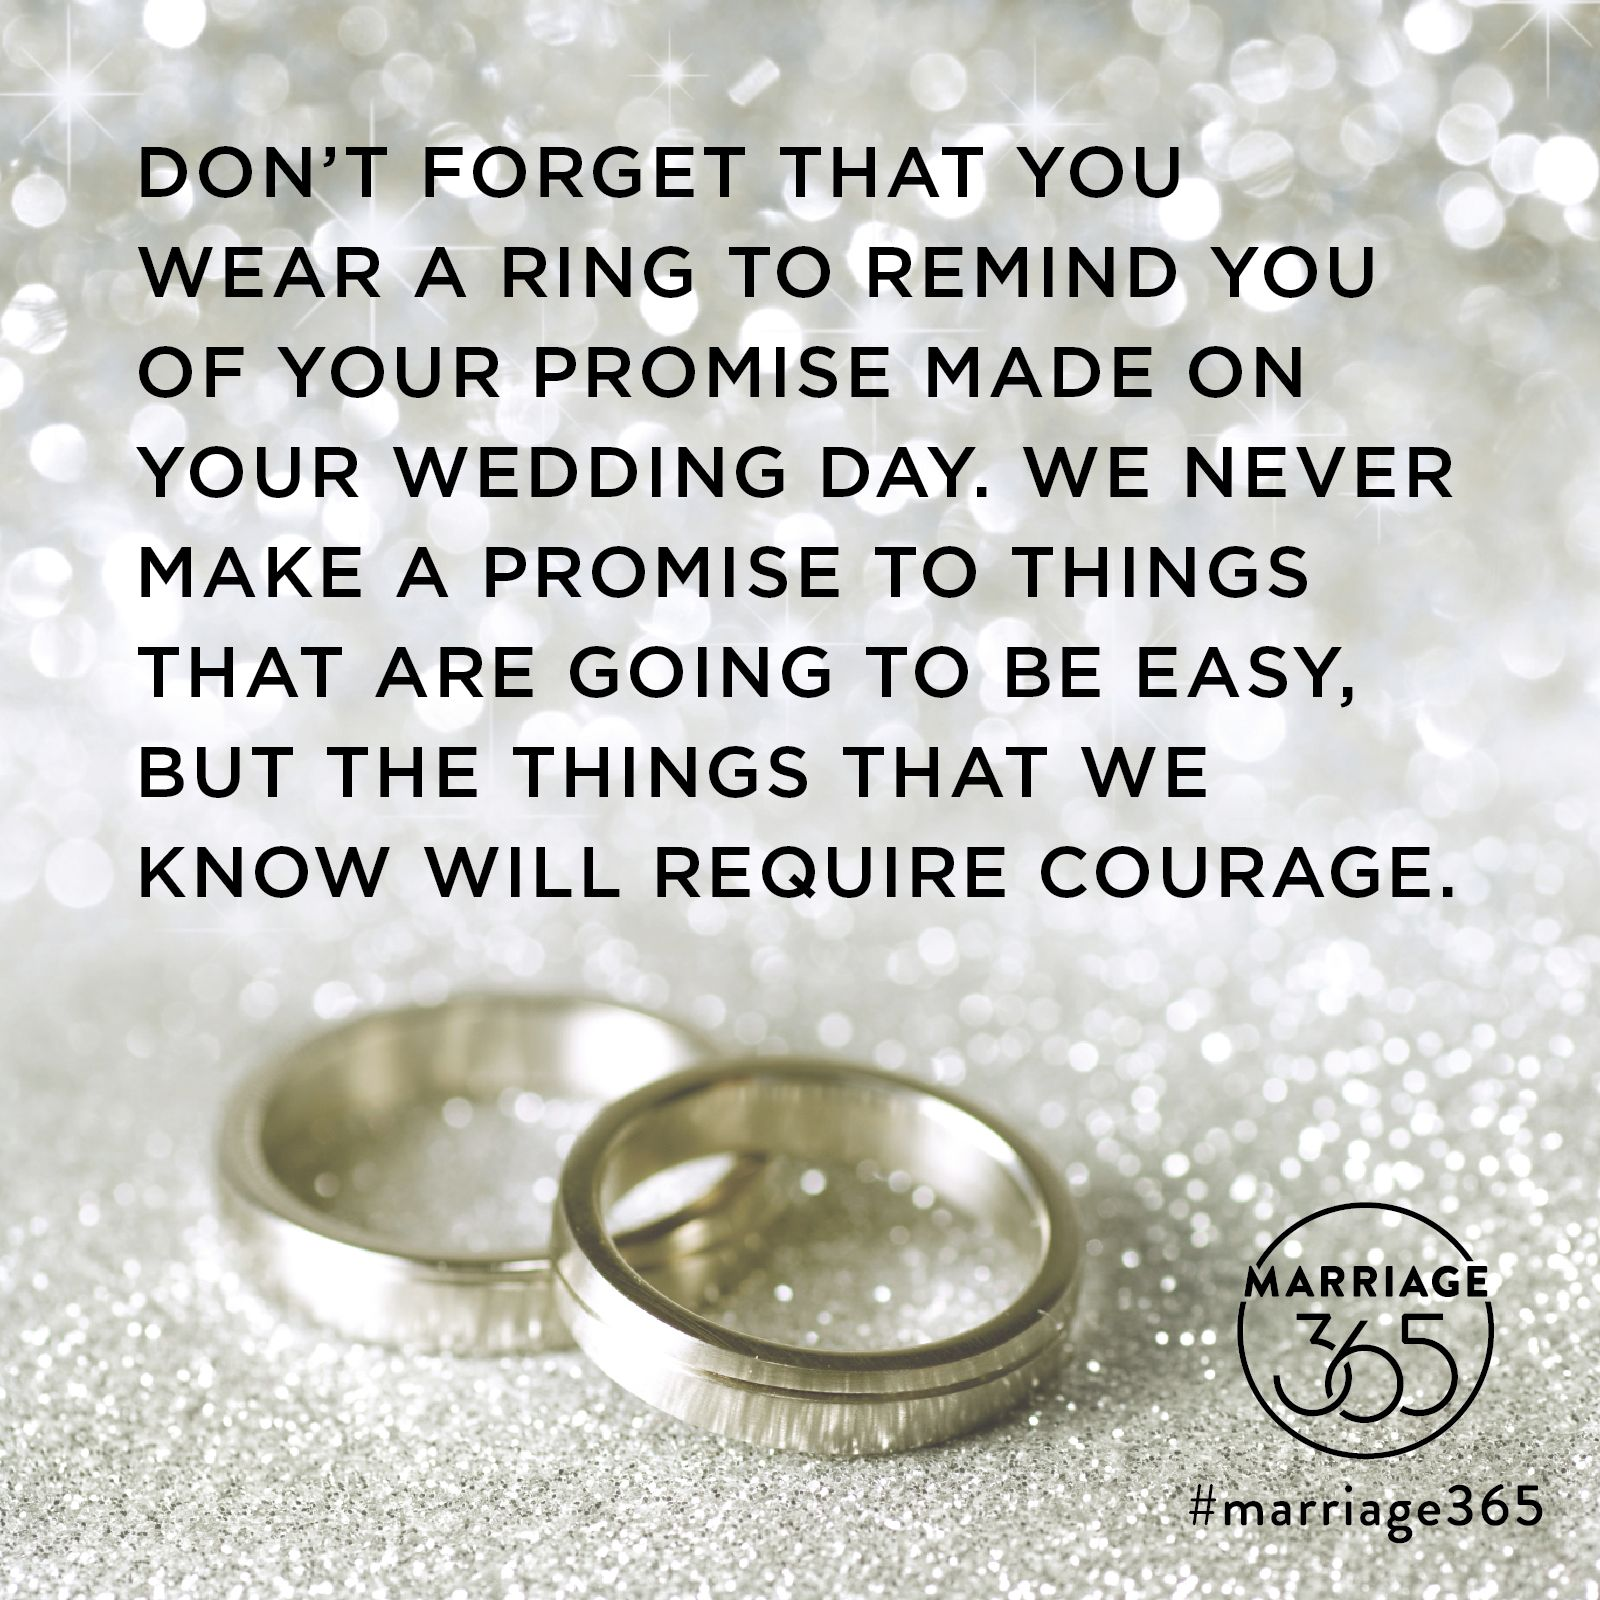 Wedding Vows. Wedding Rings. Marriage Advice, Tips And Tools On Our Website.